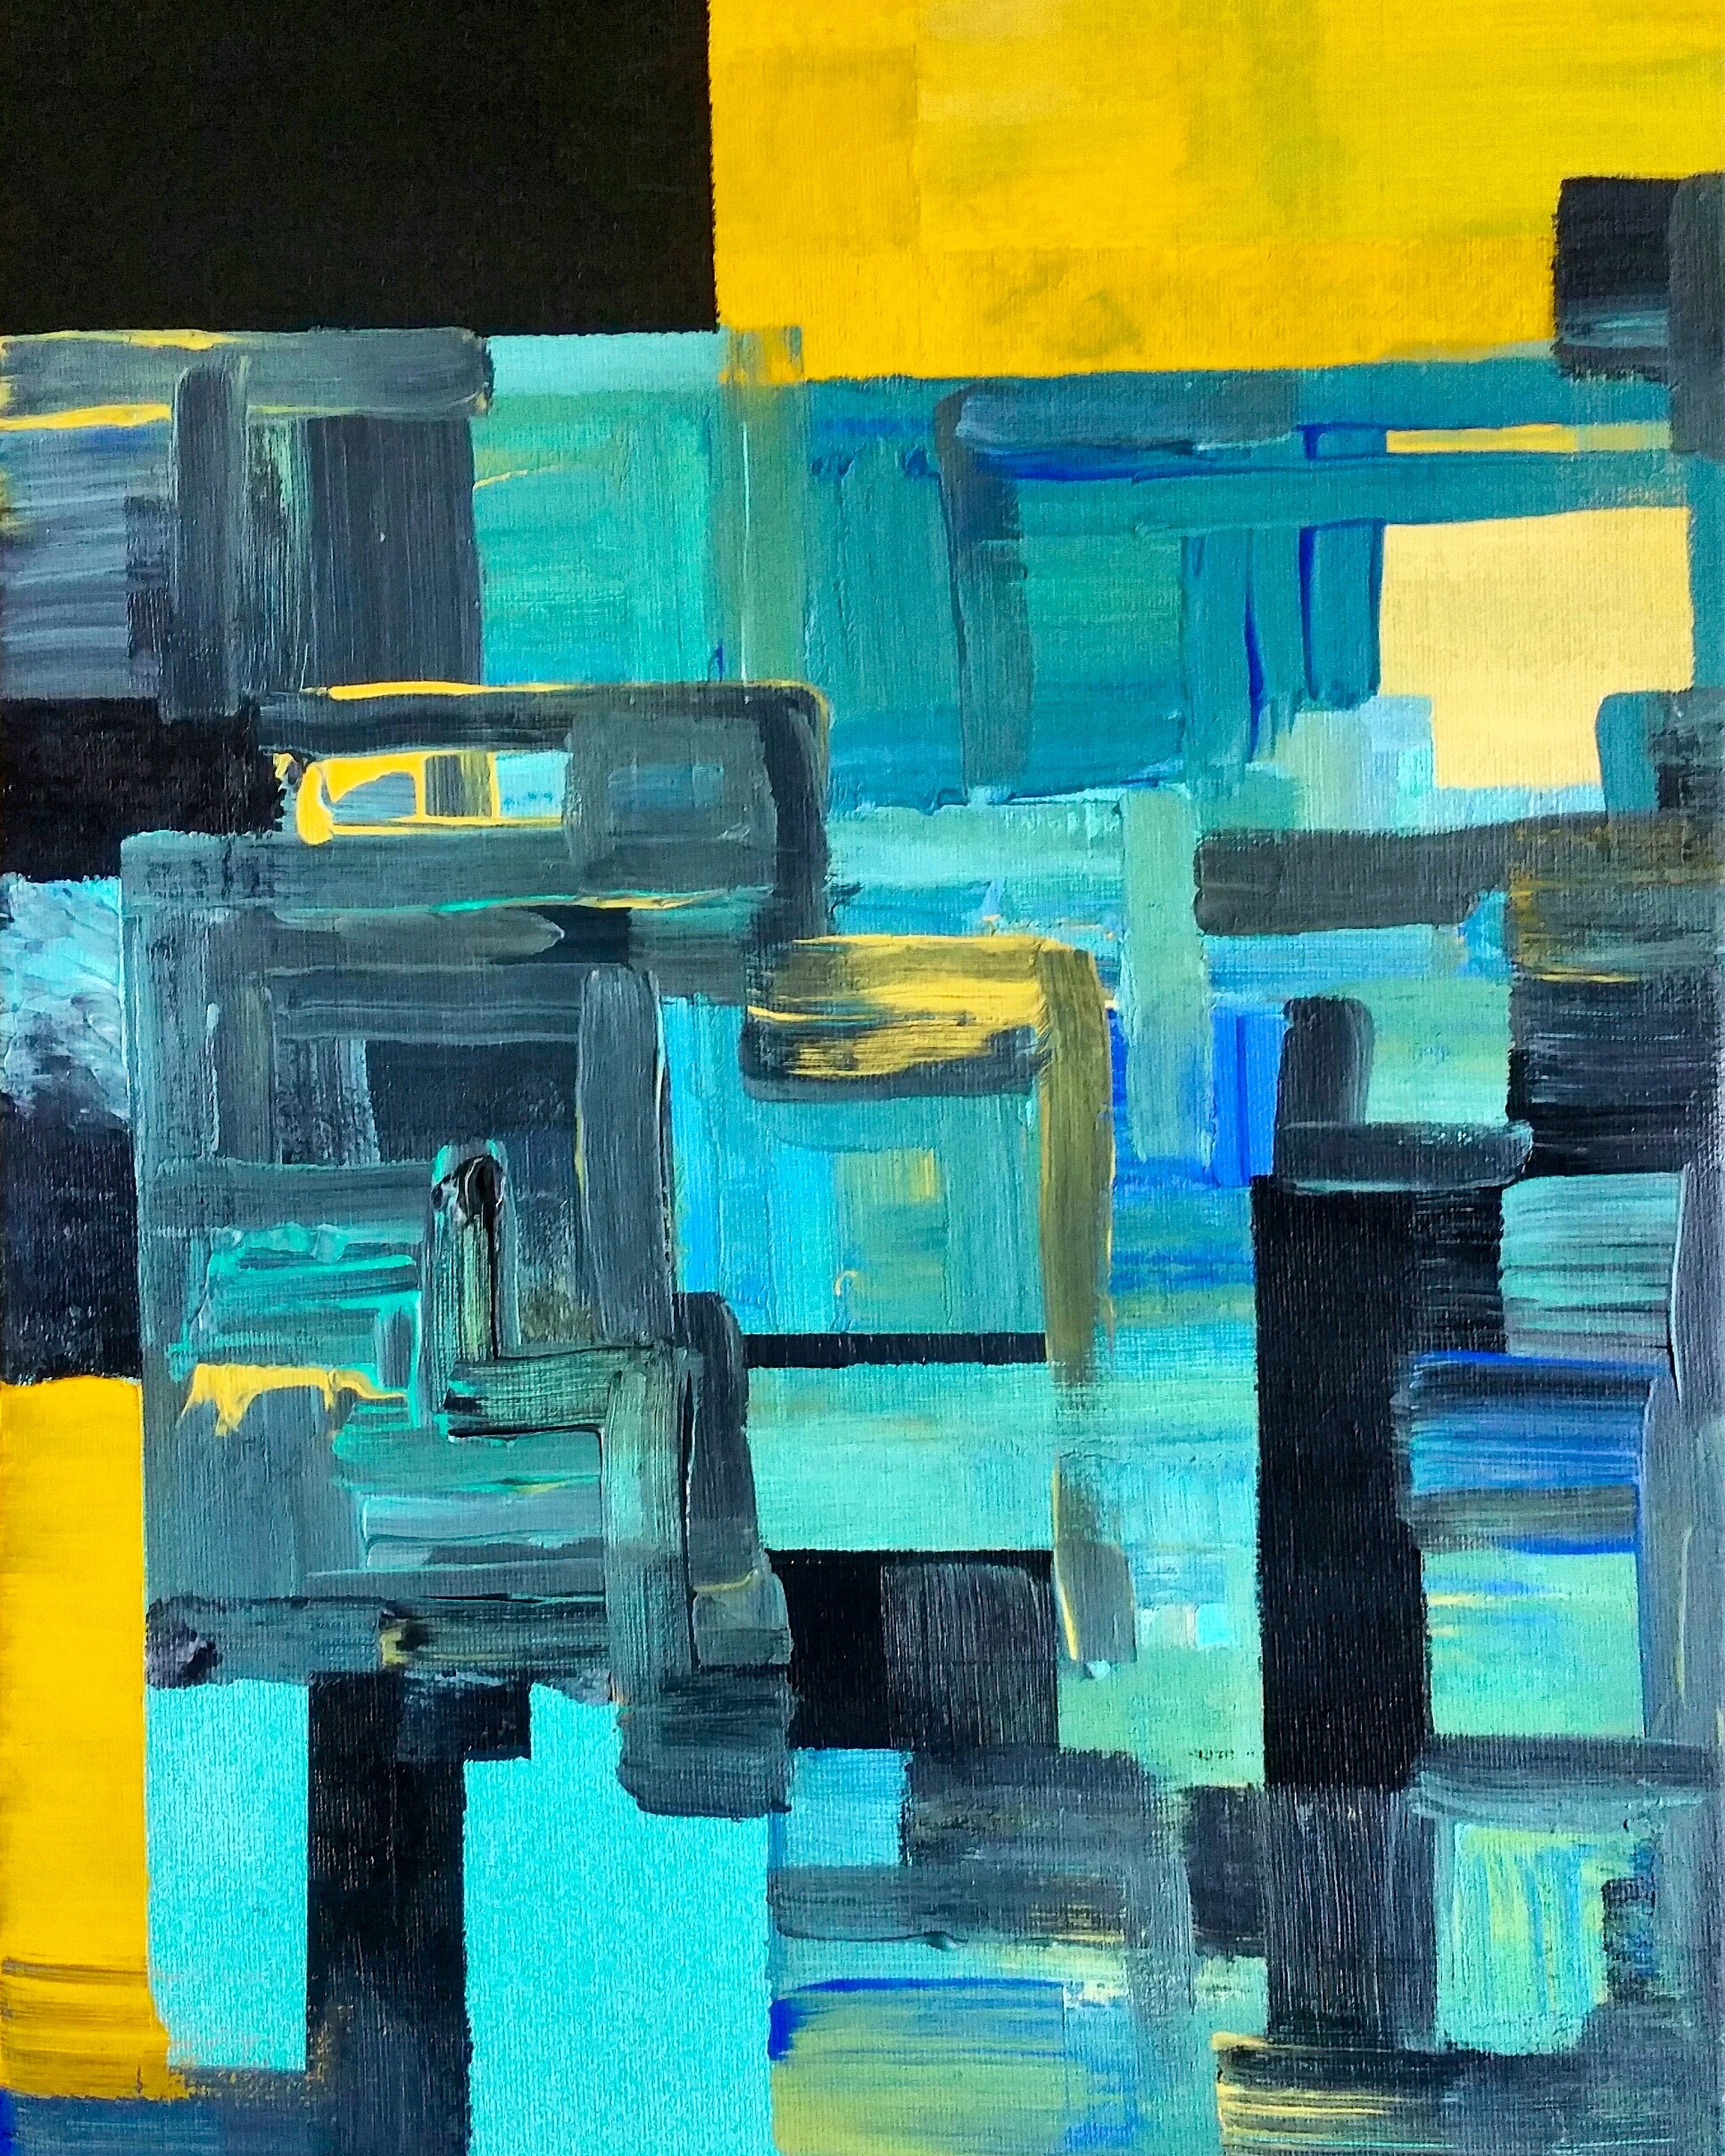 Teal & Yellow Squares #2 2017